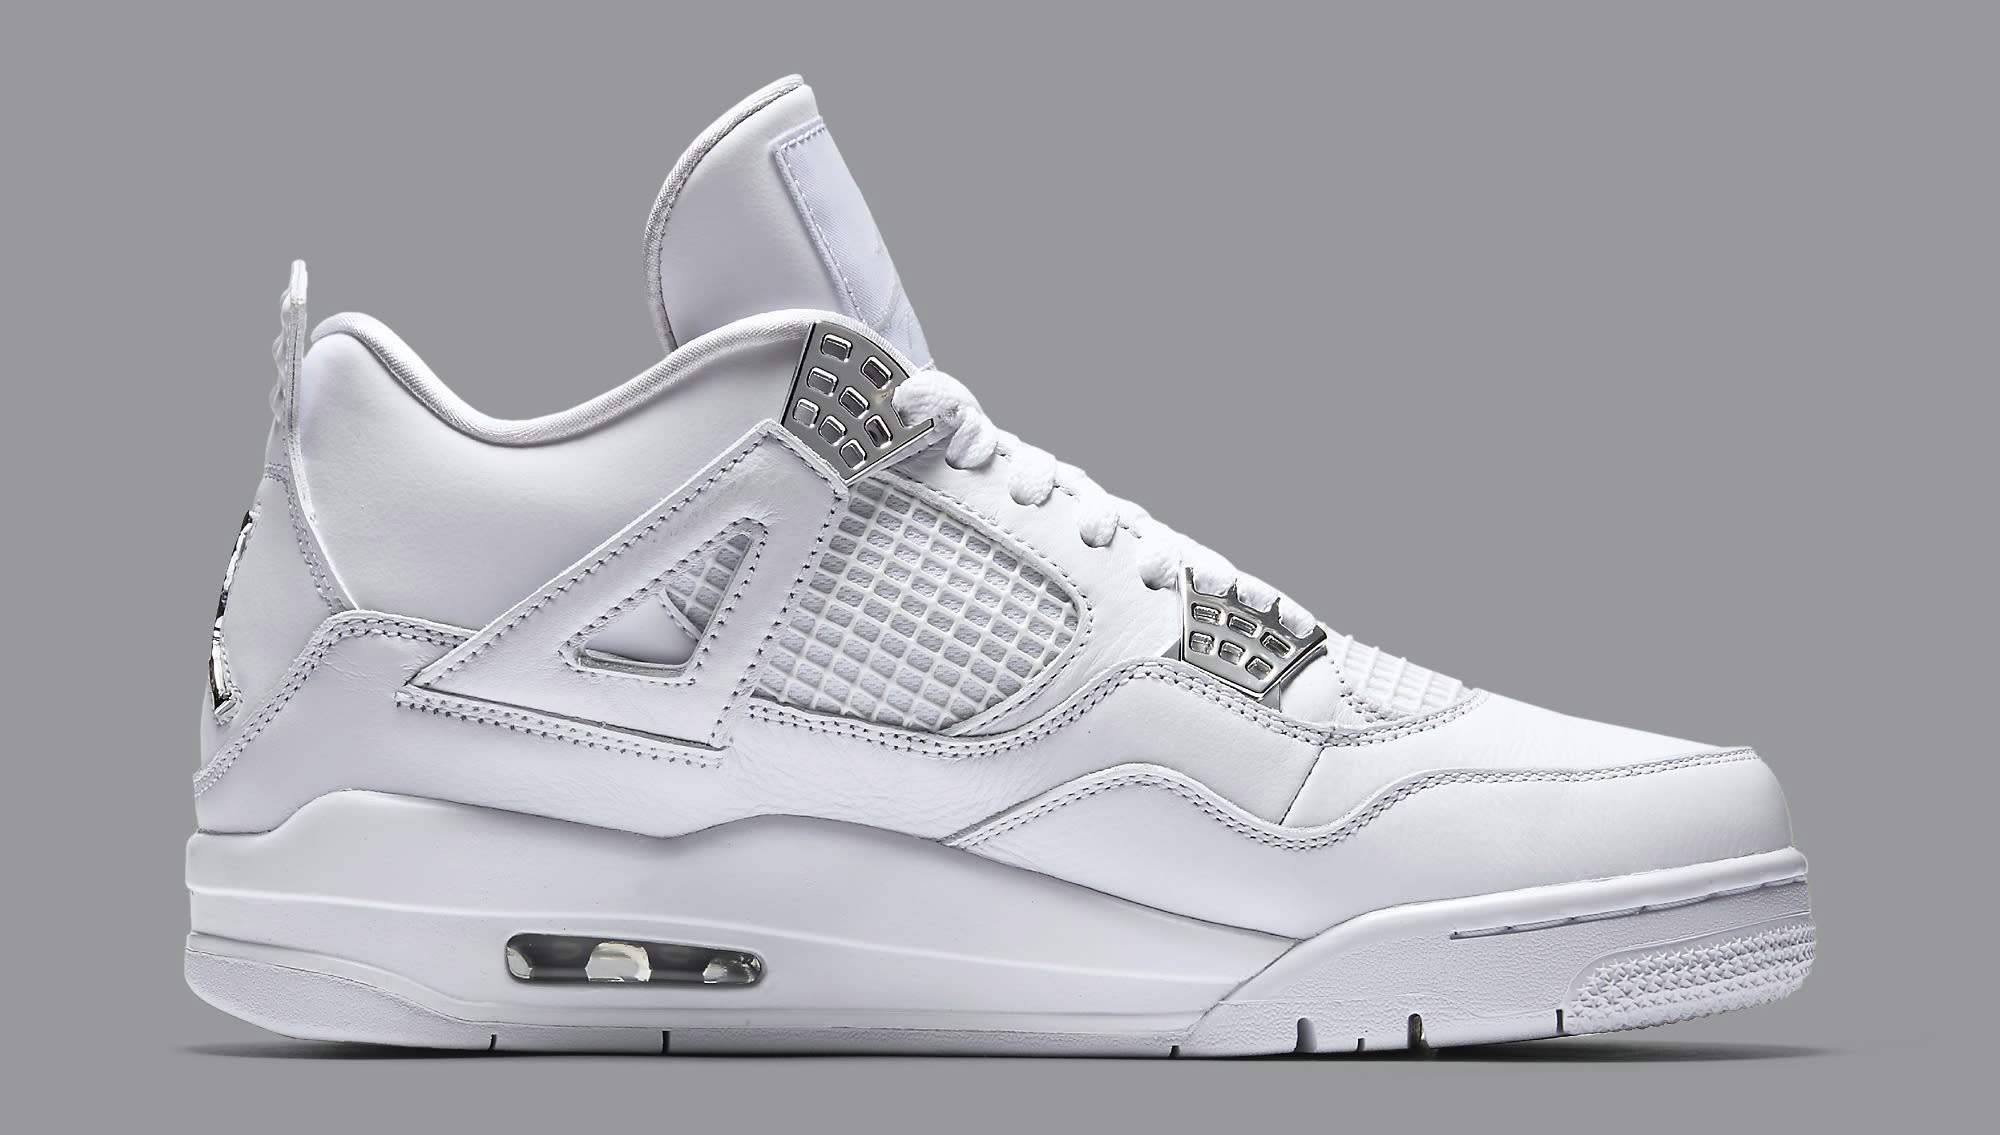 pure money air jordan 4 2017 release date 308497 100. Black Bedroom Furniture Sets. Home Design Ideas